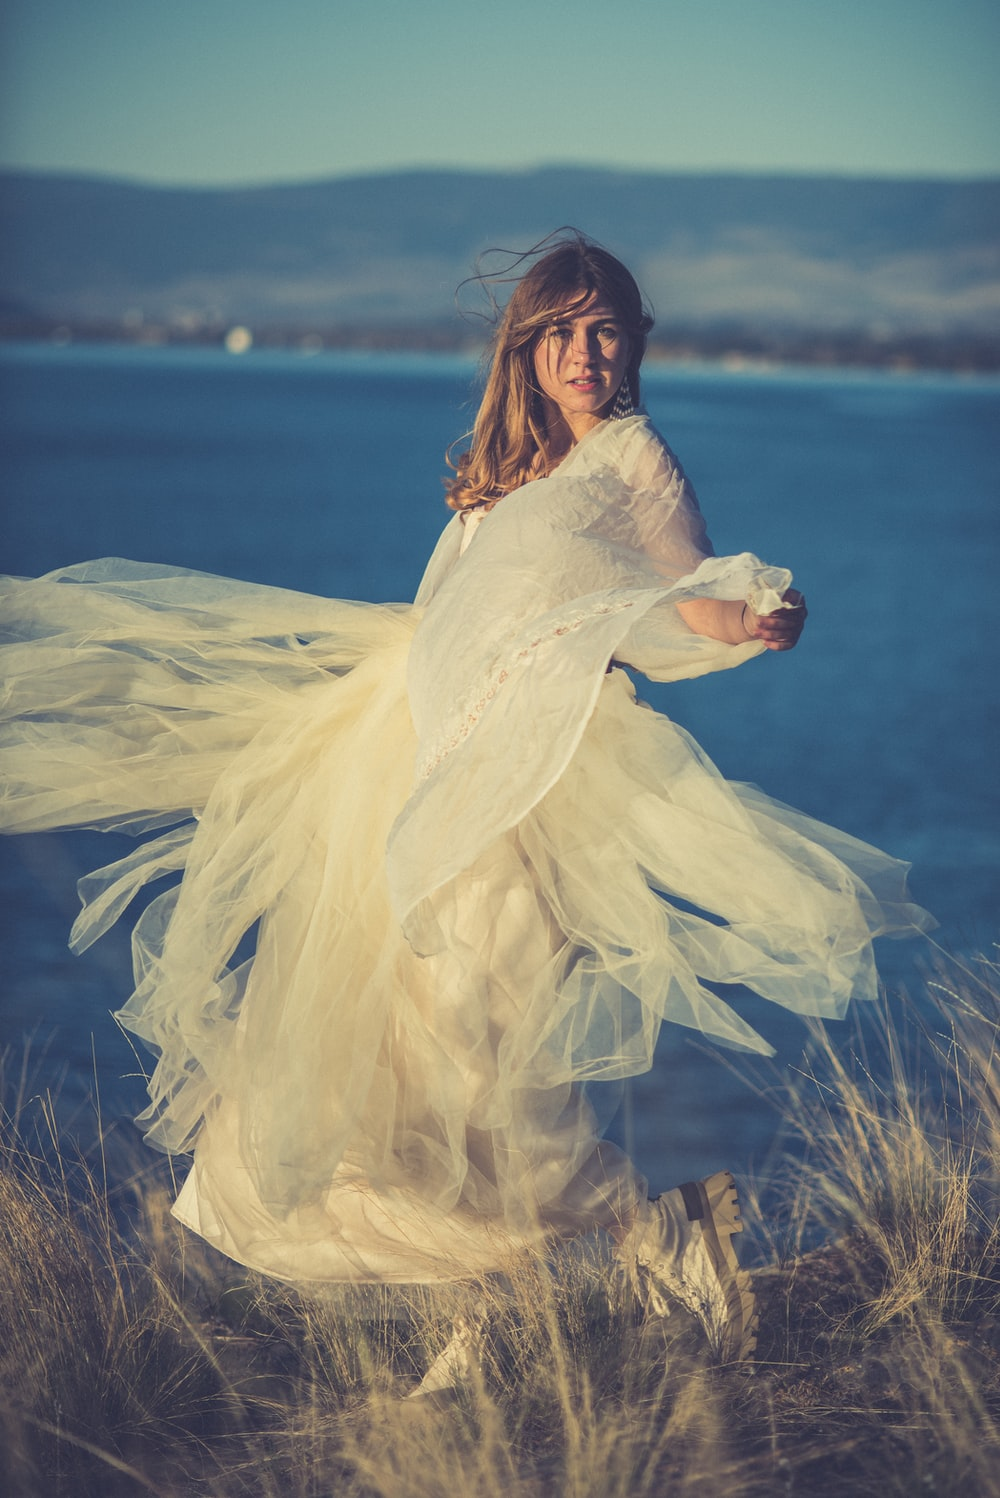 woman in white dress standing on brown grass field near body of water during daytime